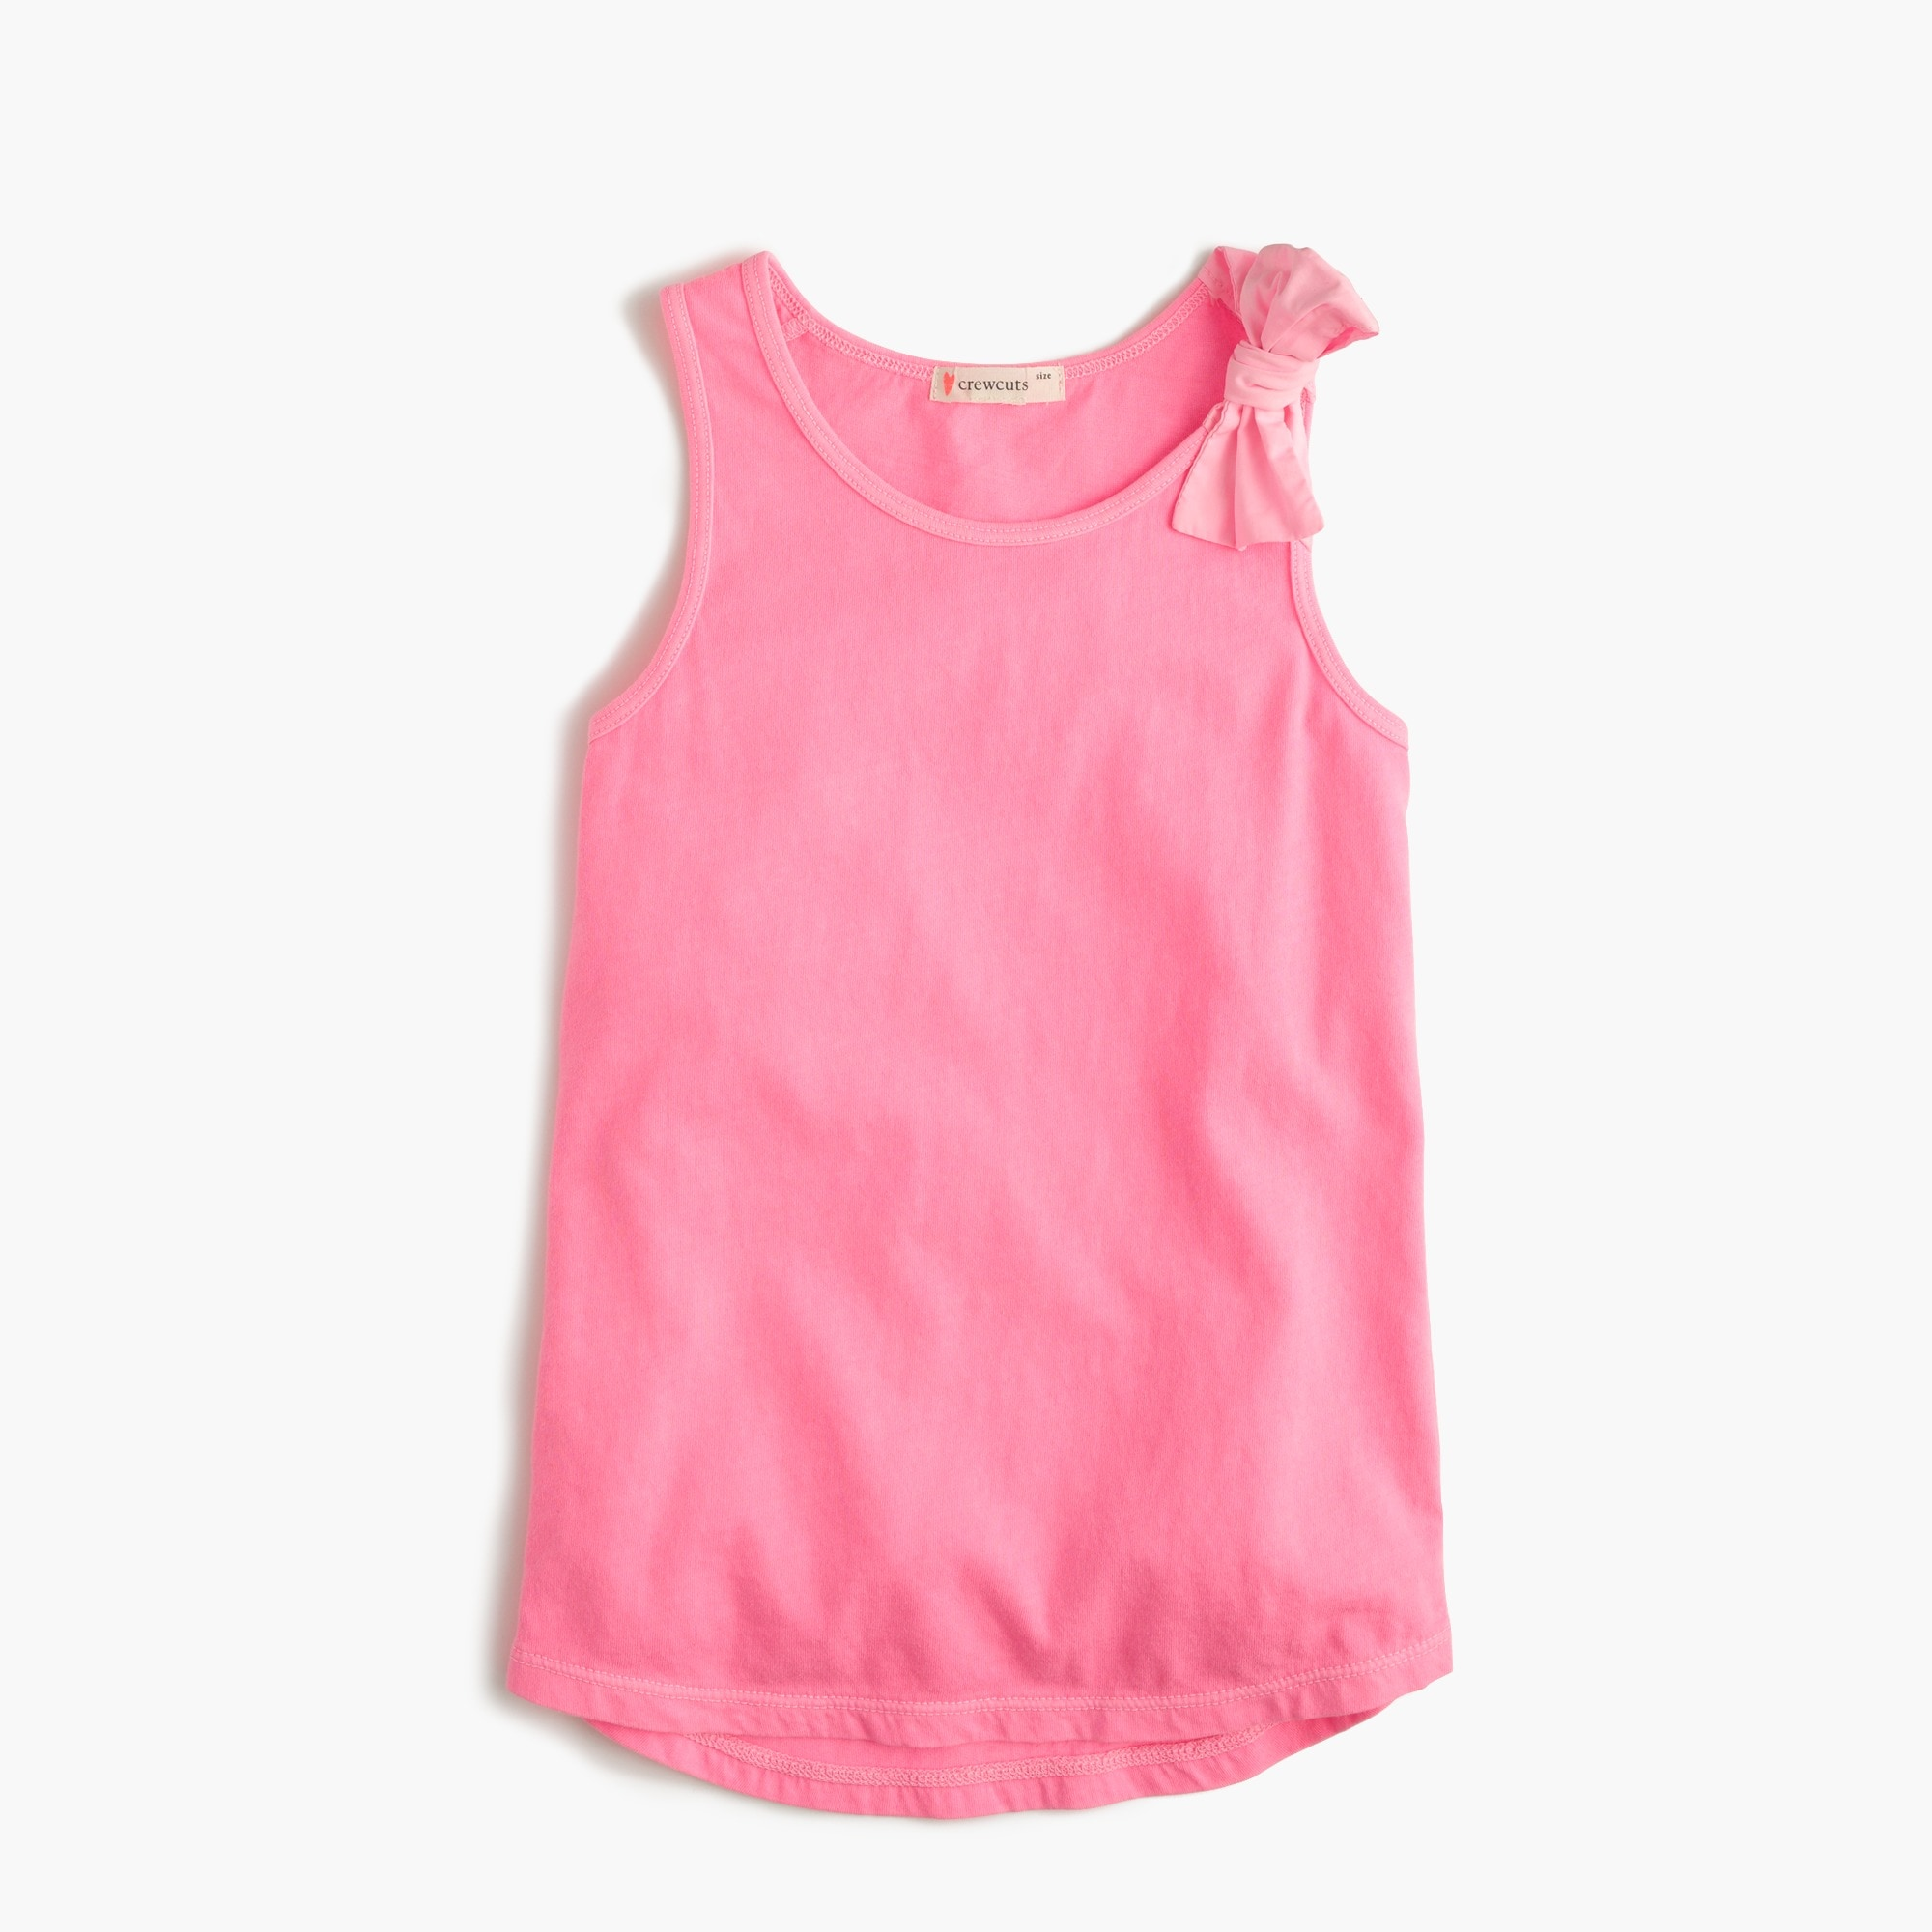 mixedproducts Girls' bow tank top